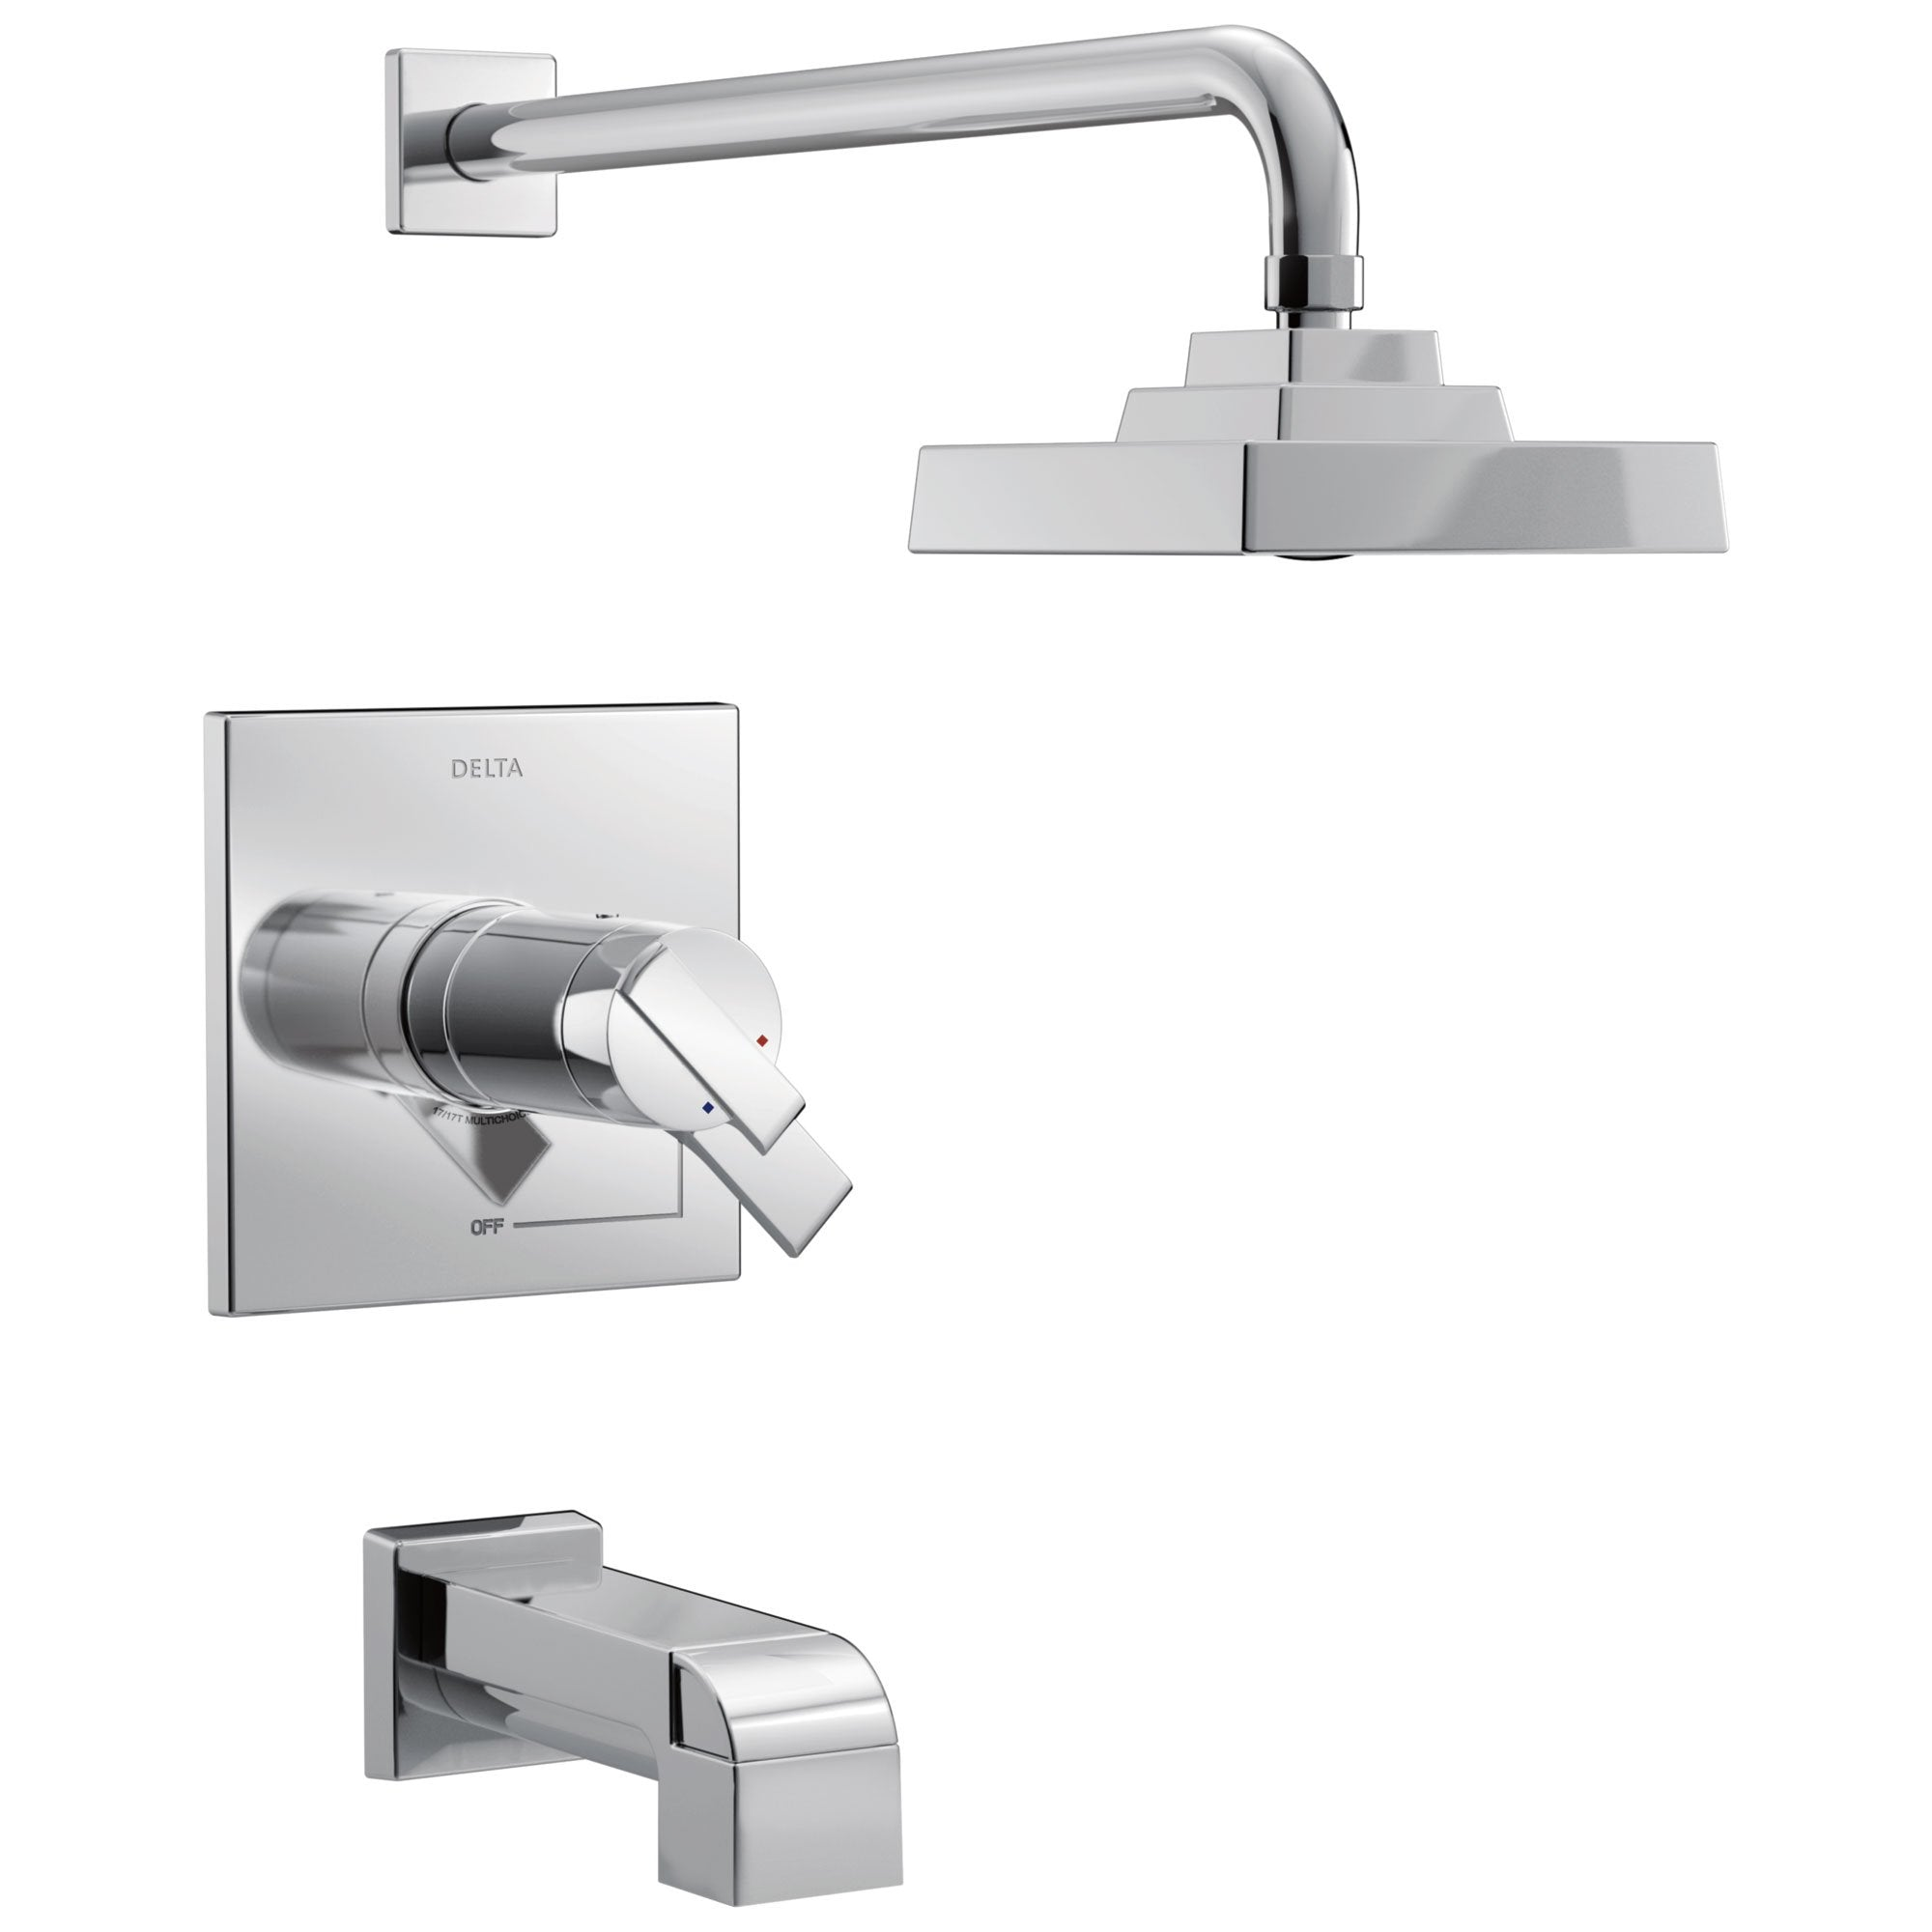 Delta Ara Collection Chrome Modern Thermostatic TempAssure 17T Series Tub and Shower Combination Faucet Includes Valve with Stops D2224V